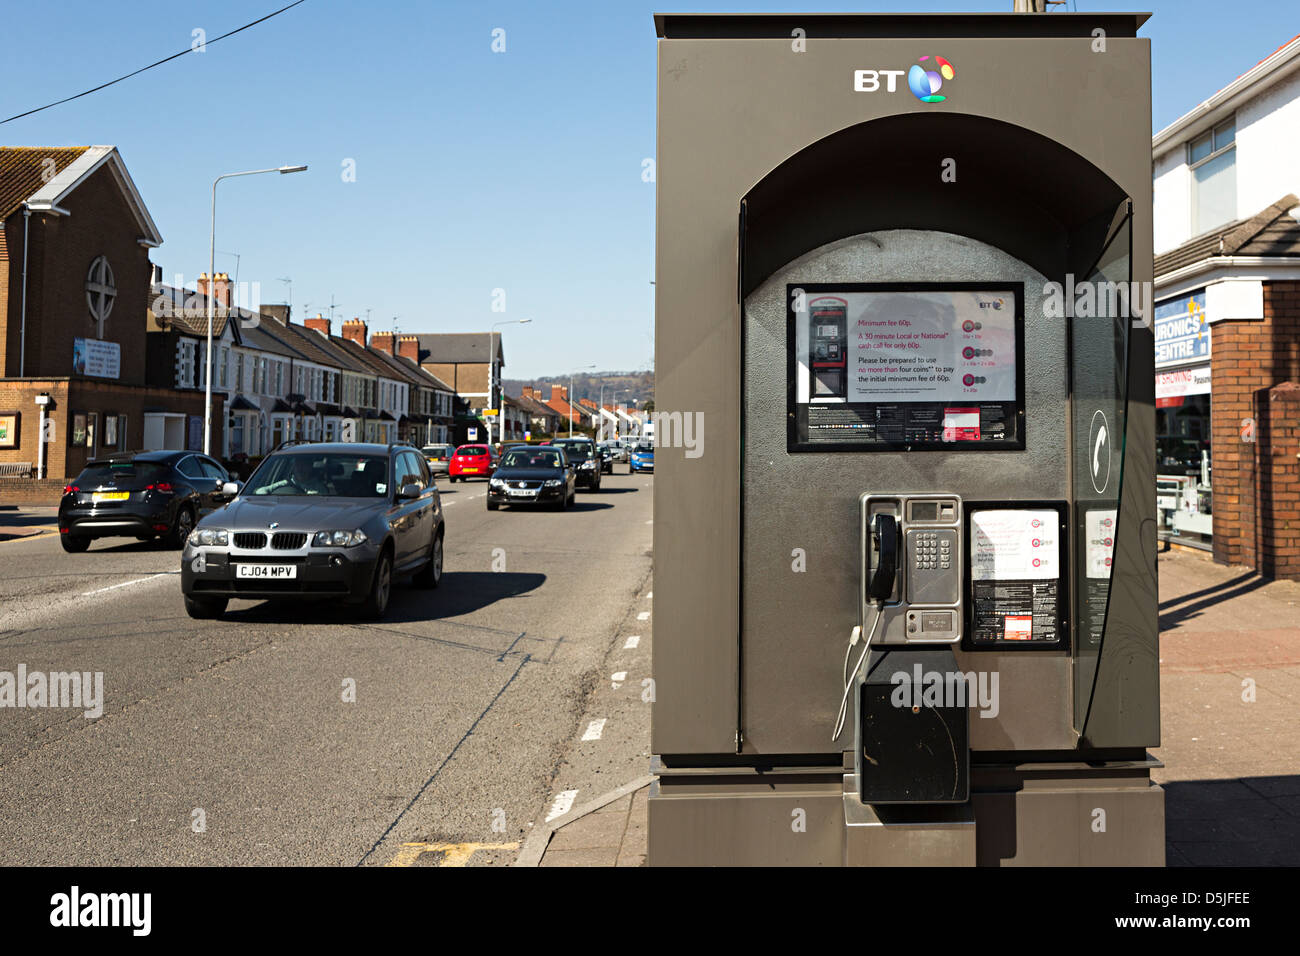 Open telephone kiosk alongside busy noisy road, Cardiff, Wales, UK - Stock Image